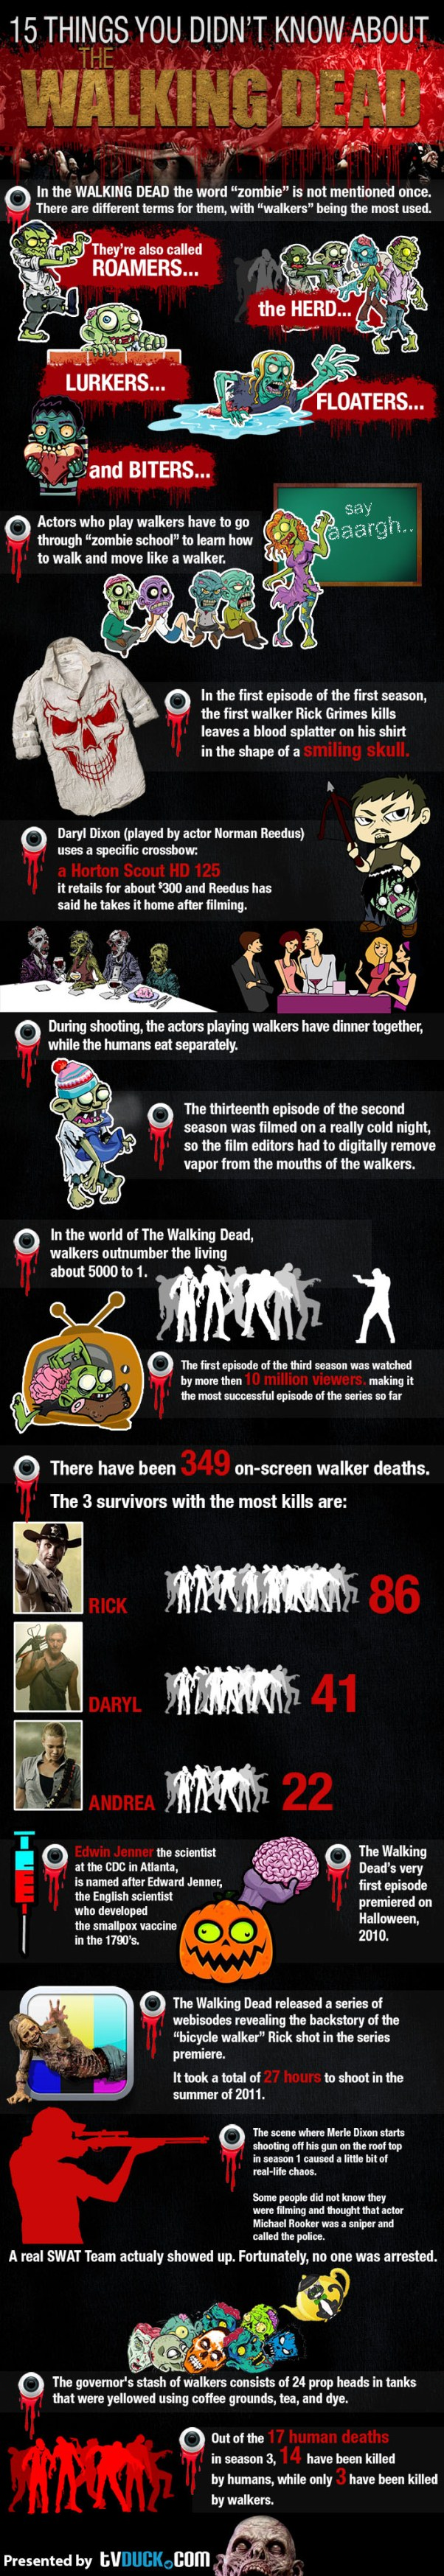 15-things-you-didnt-know-about-the-walking-dead